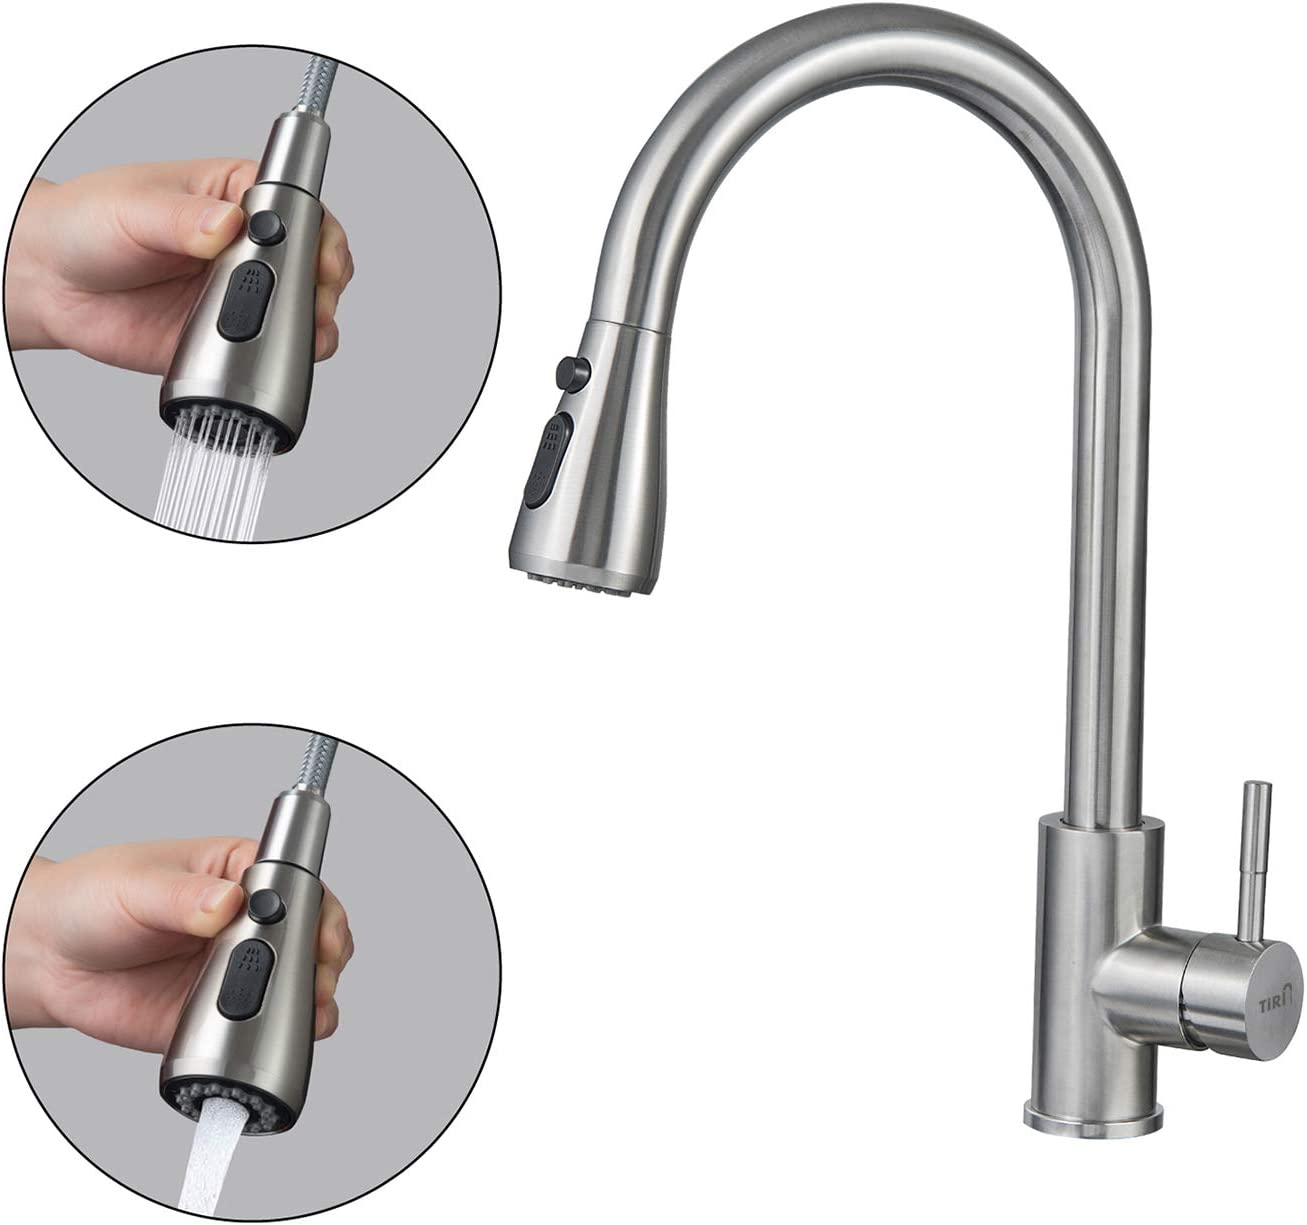 3 Mode Single Level Stainless Steel Kitchen Sink Faucets with Pull Down Sprayer Robinet de cuisine /à tirette